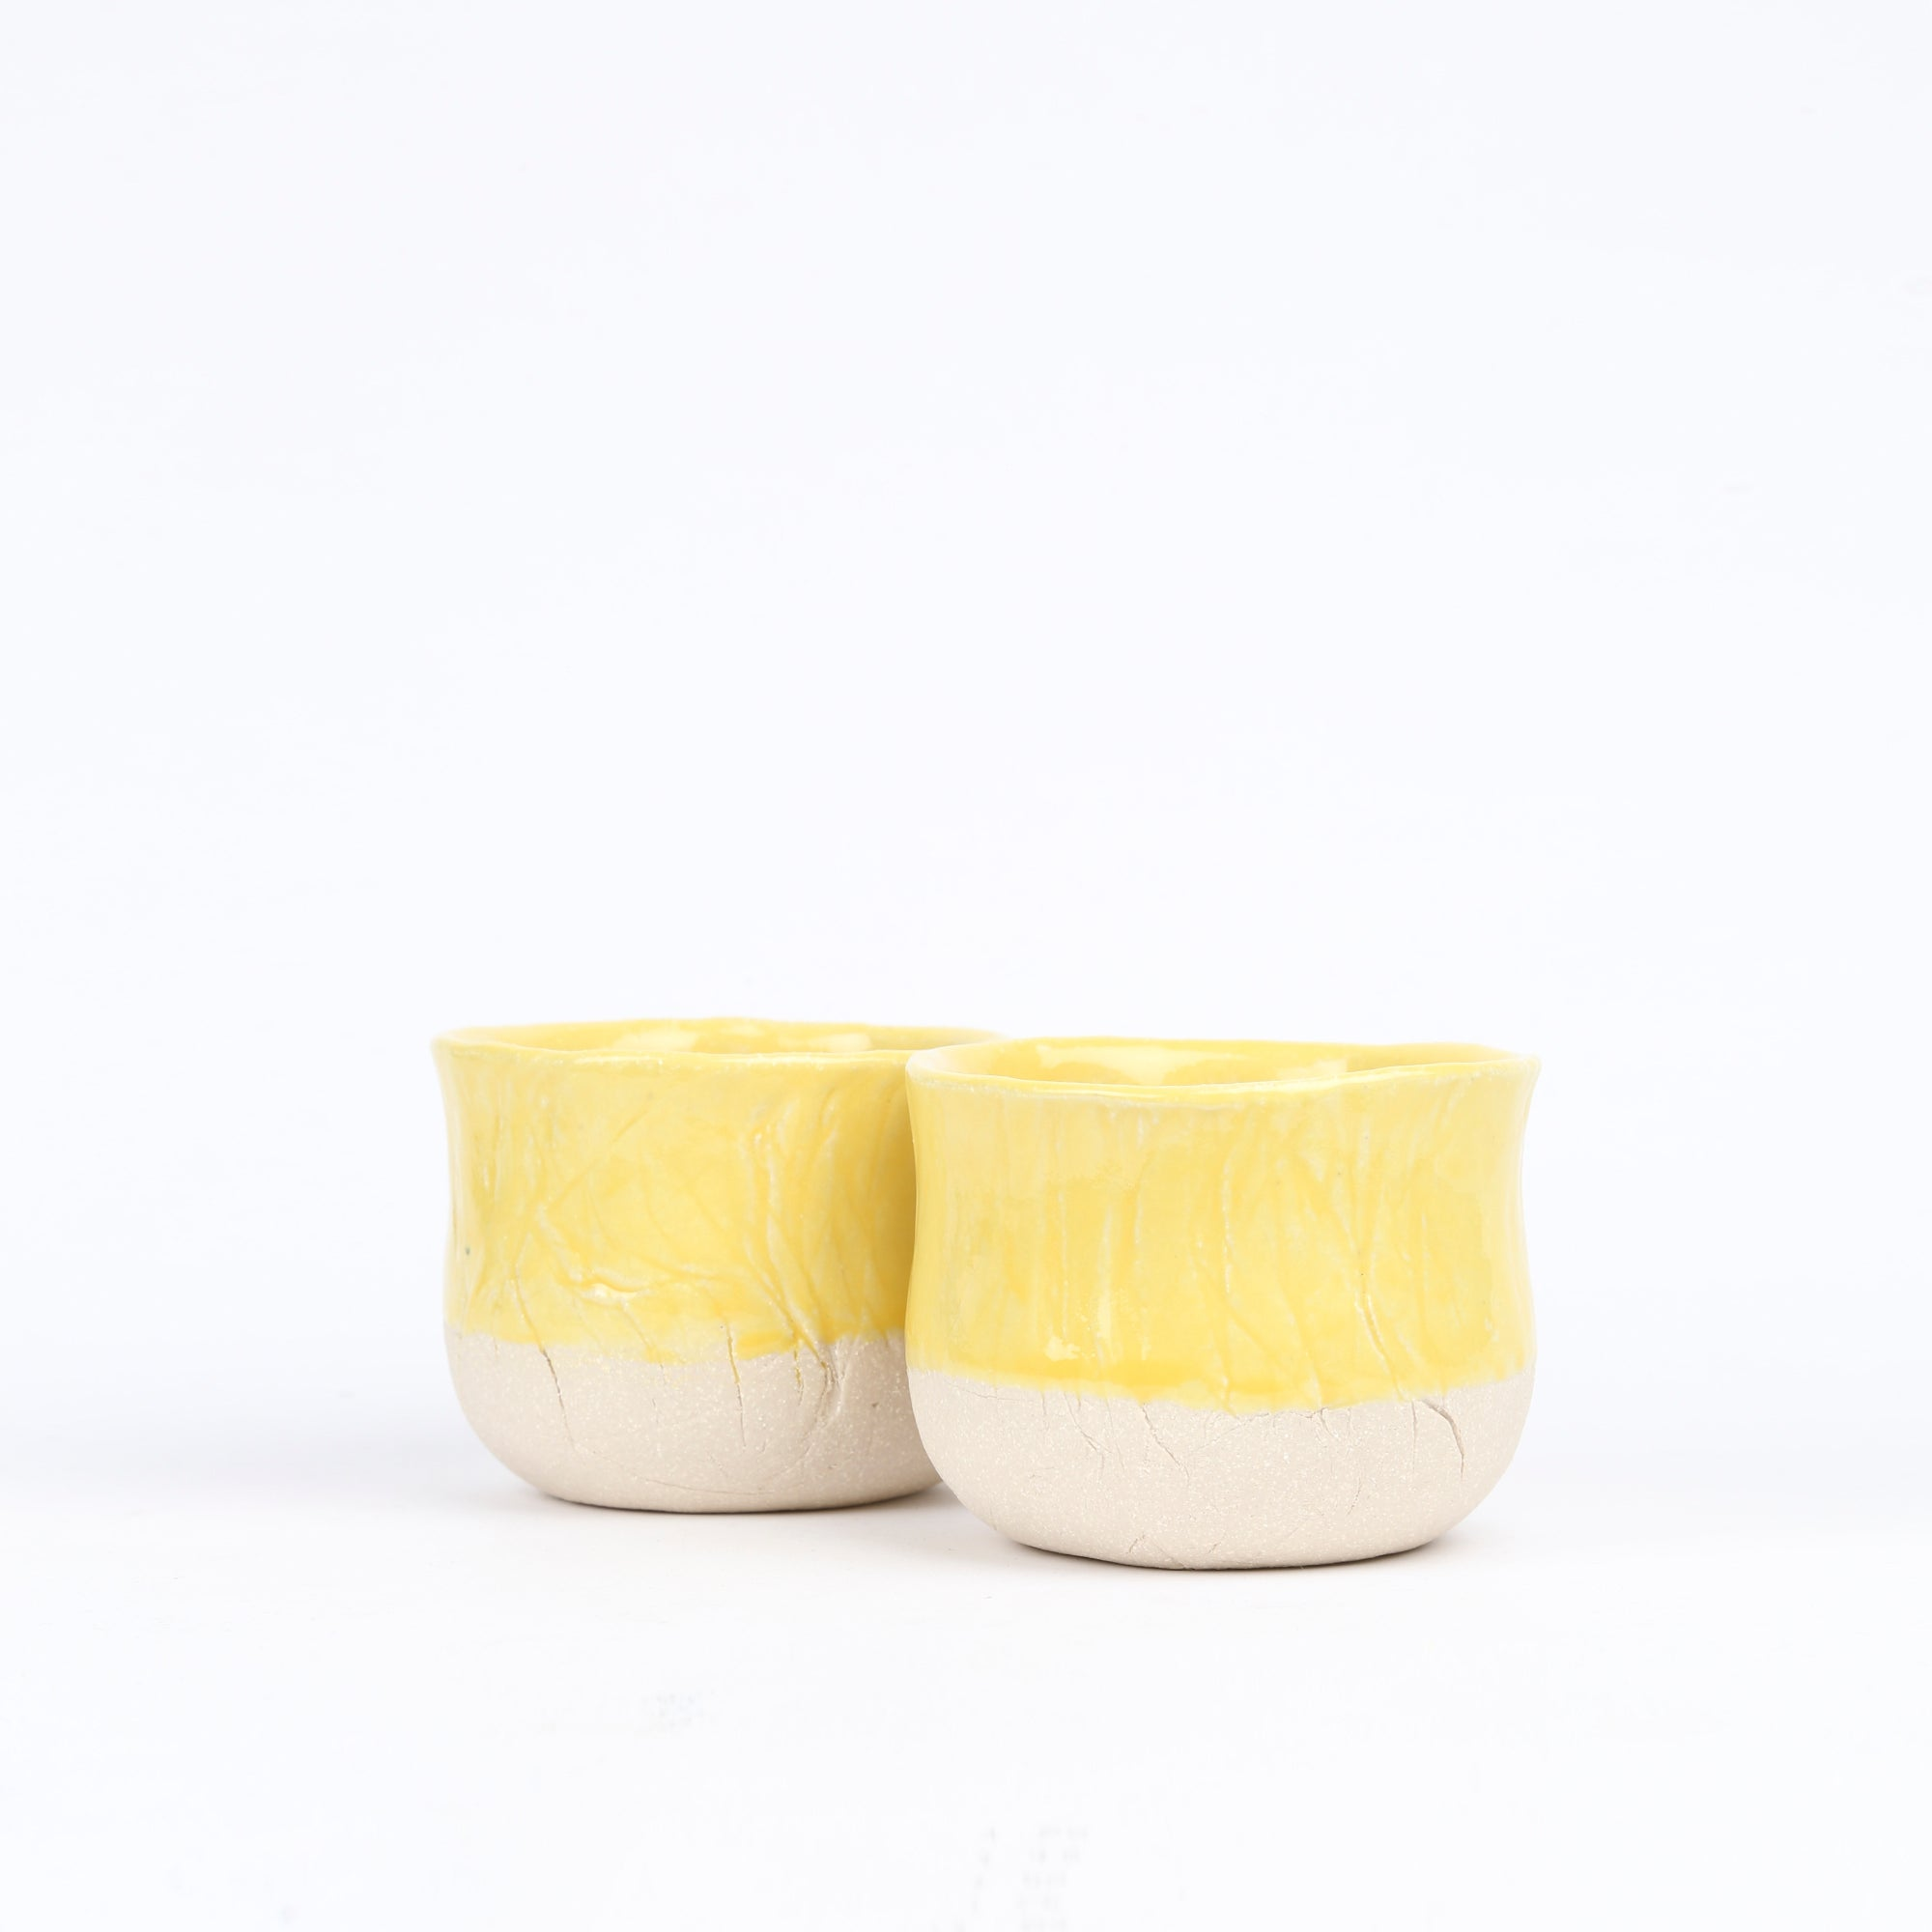 Kana Tea Cup in Yellow